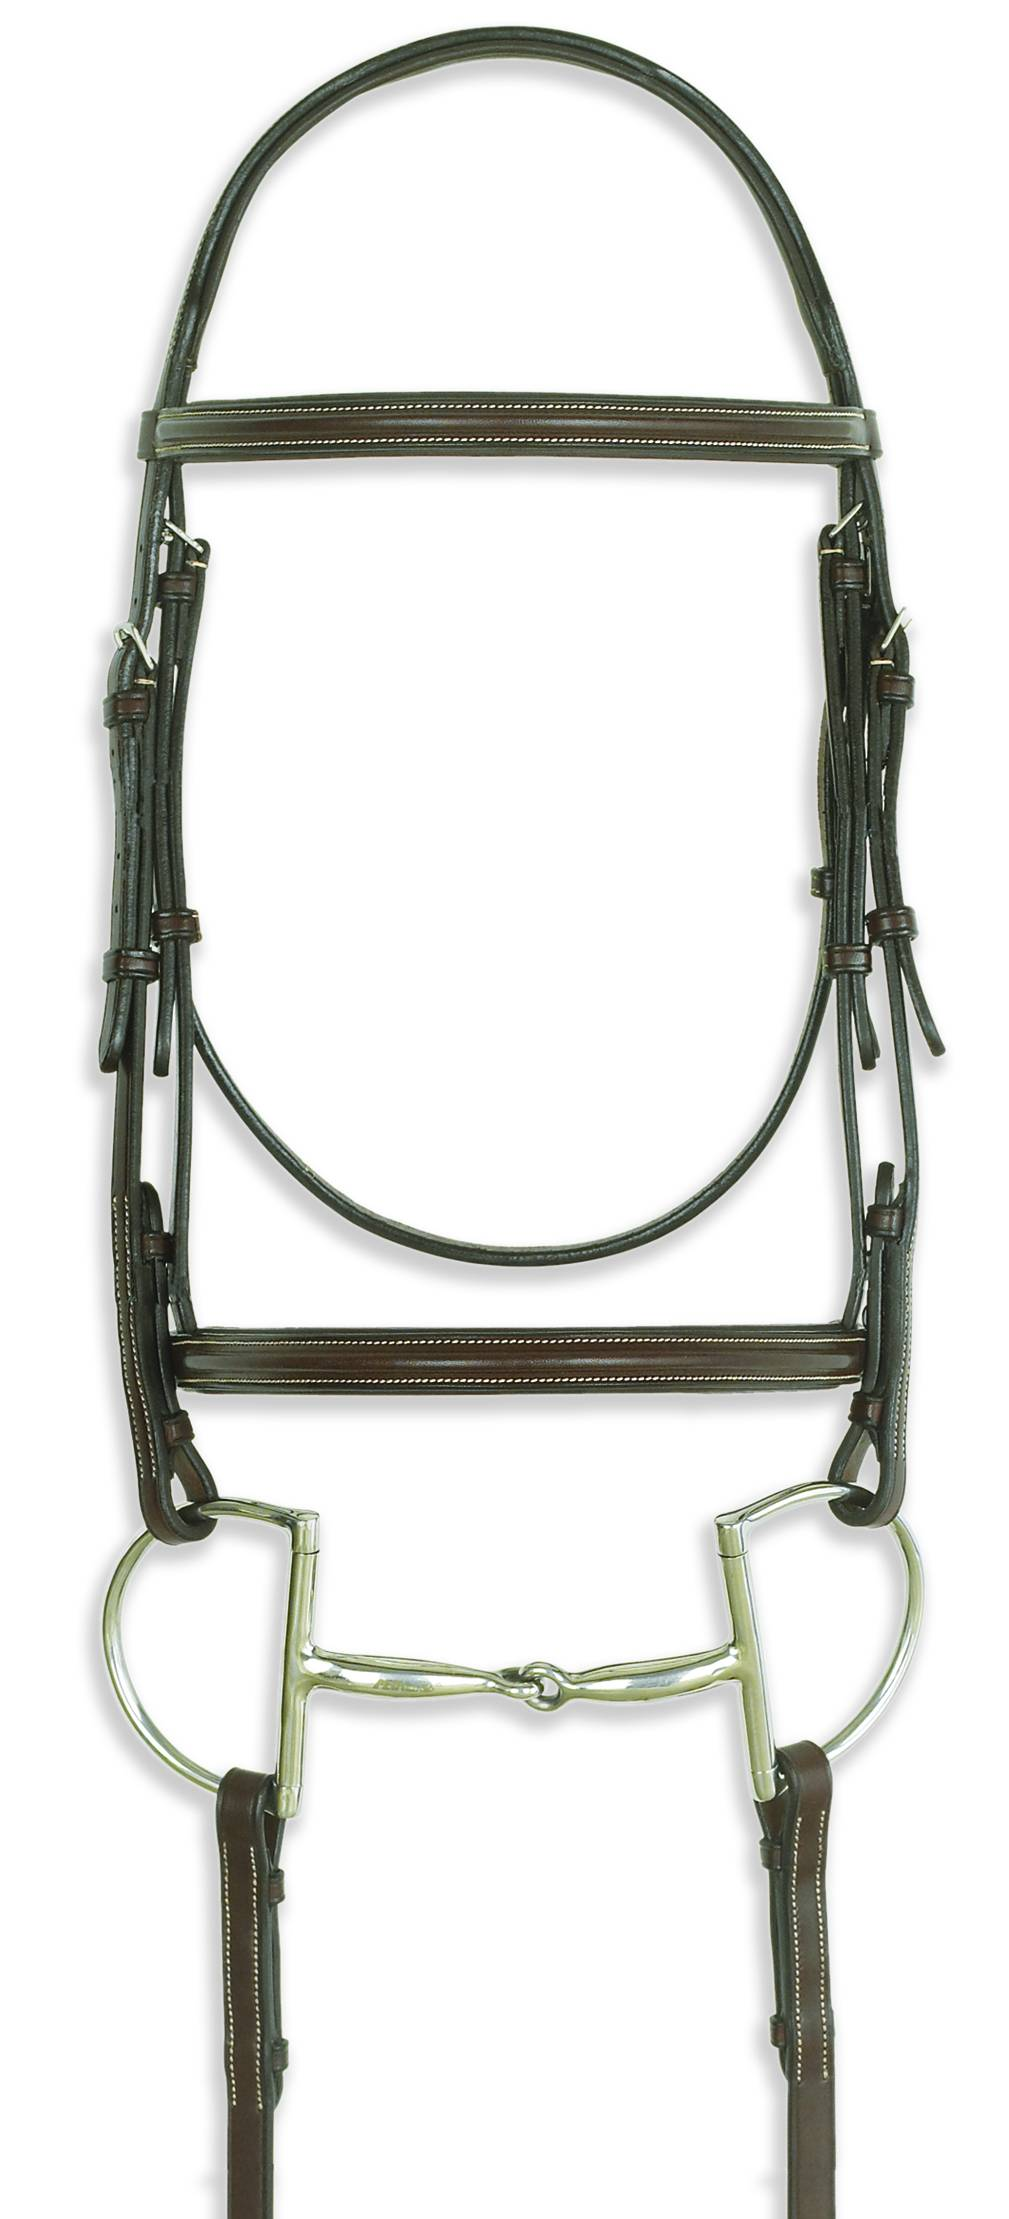 Ovation Classic CC Plain Raised Bridle